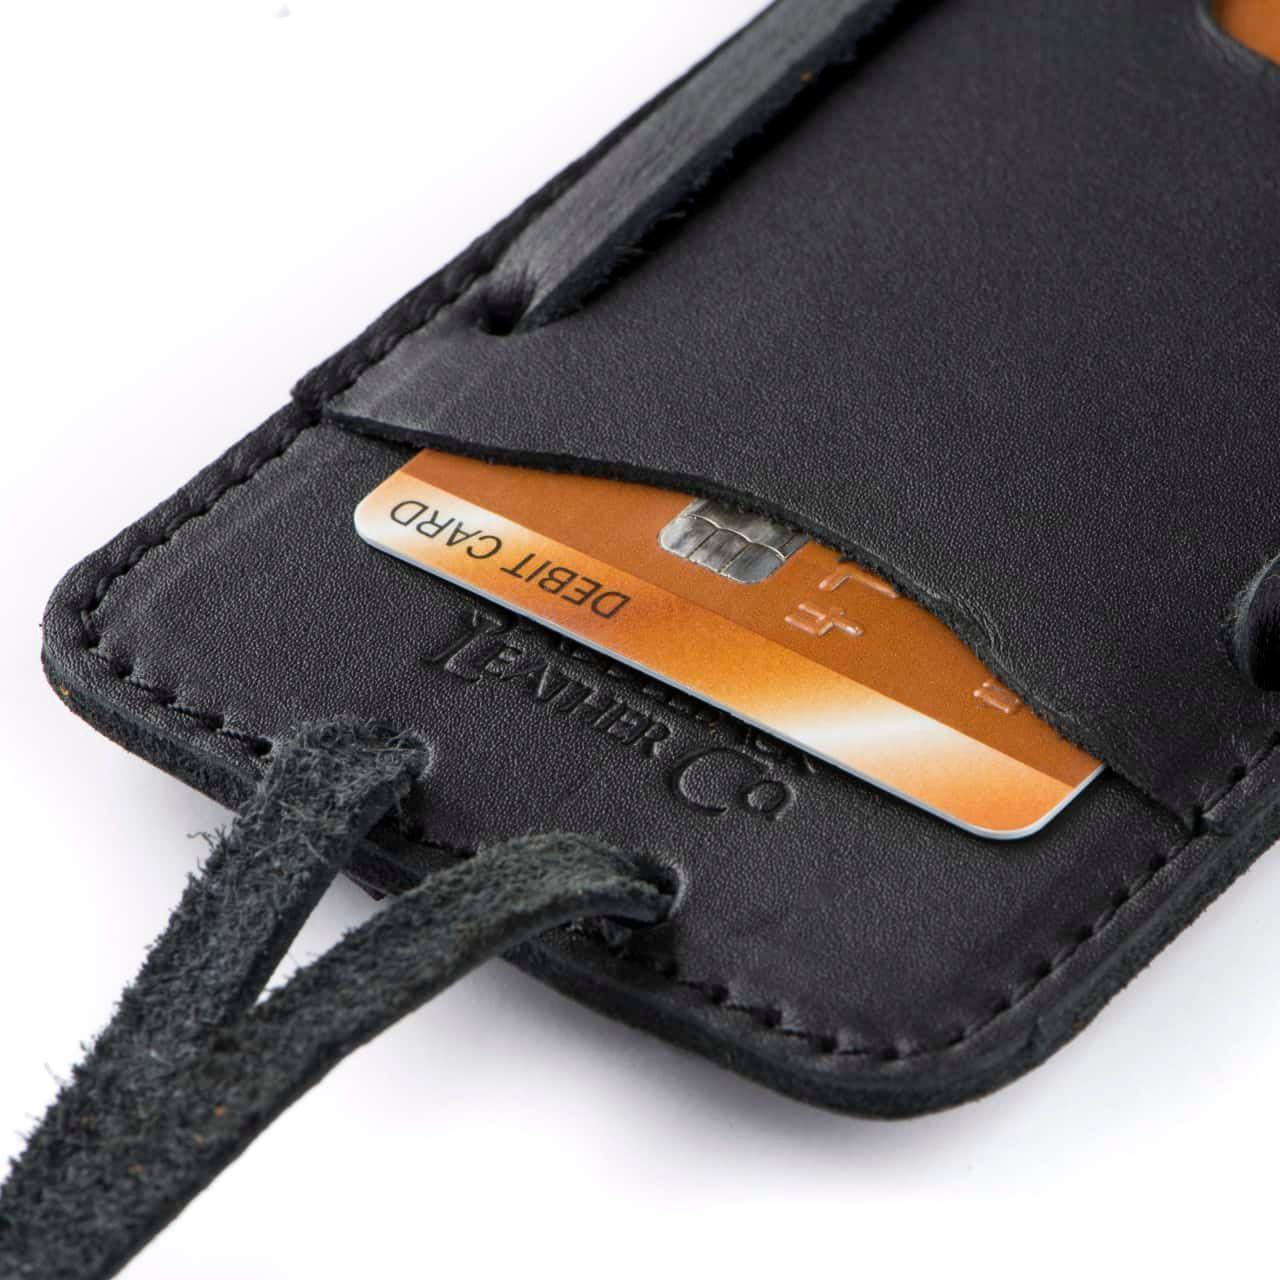 Leather iPhone 8 Case in Color Black Zoomed in on the Saddleback Logo and Card Slot with a Card